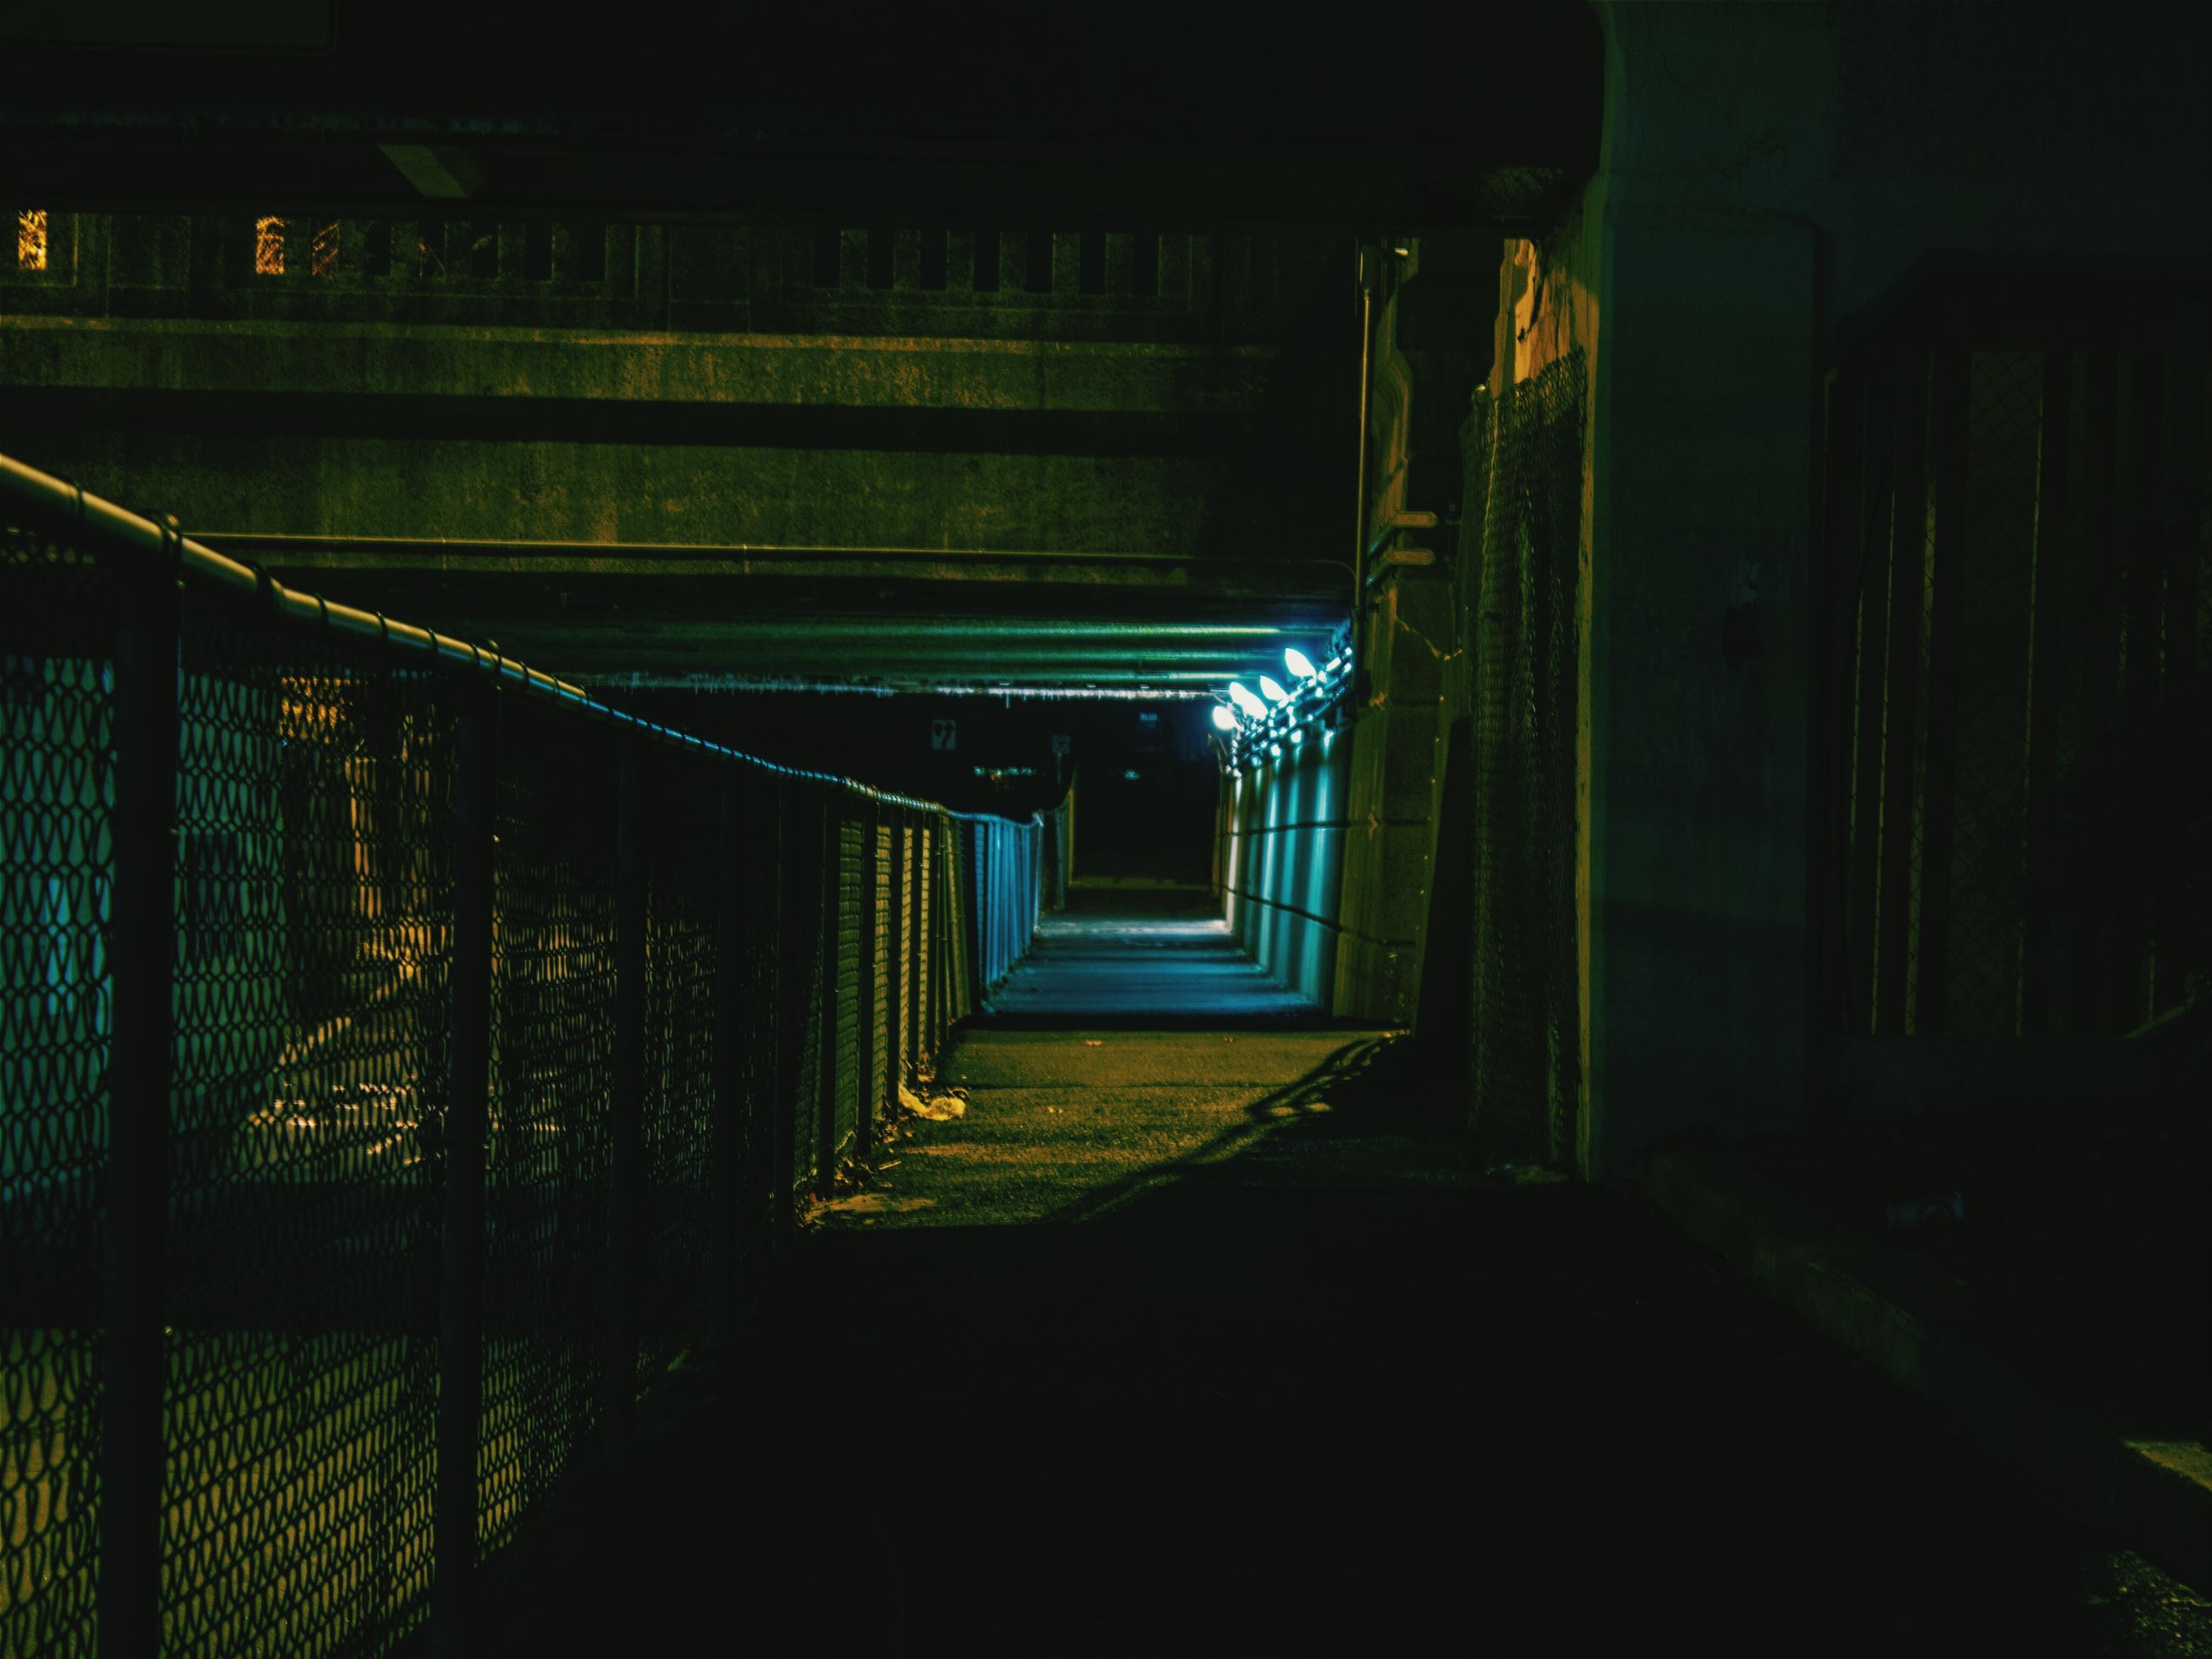 indoors, built structure, architecture, the way forward, illuminated, night, empty, wall - building feature, corridor, dark, steps, door, tunnel, narrow, absence, diminishing perspective, abandoned, no people, building, staircase